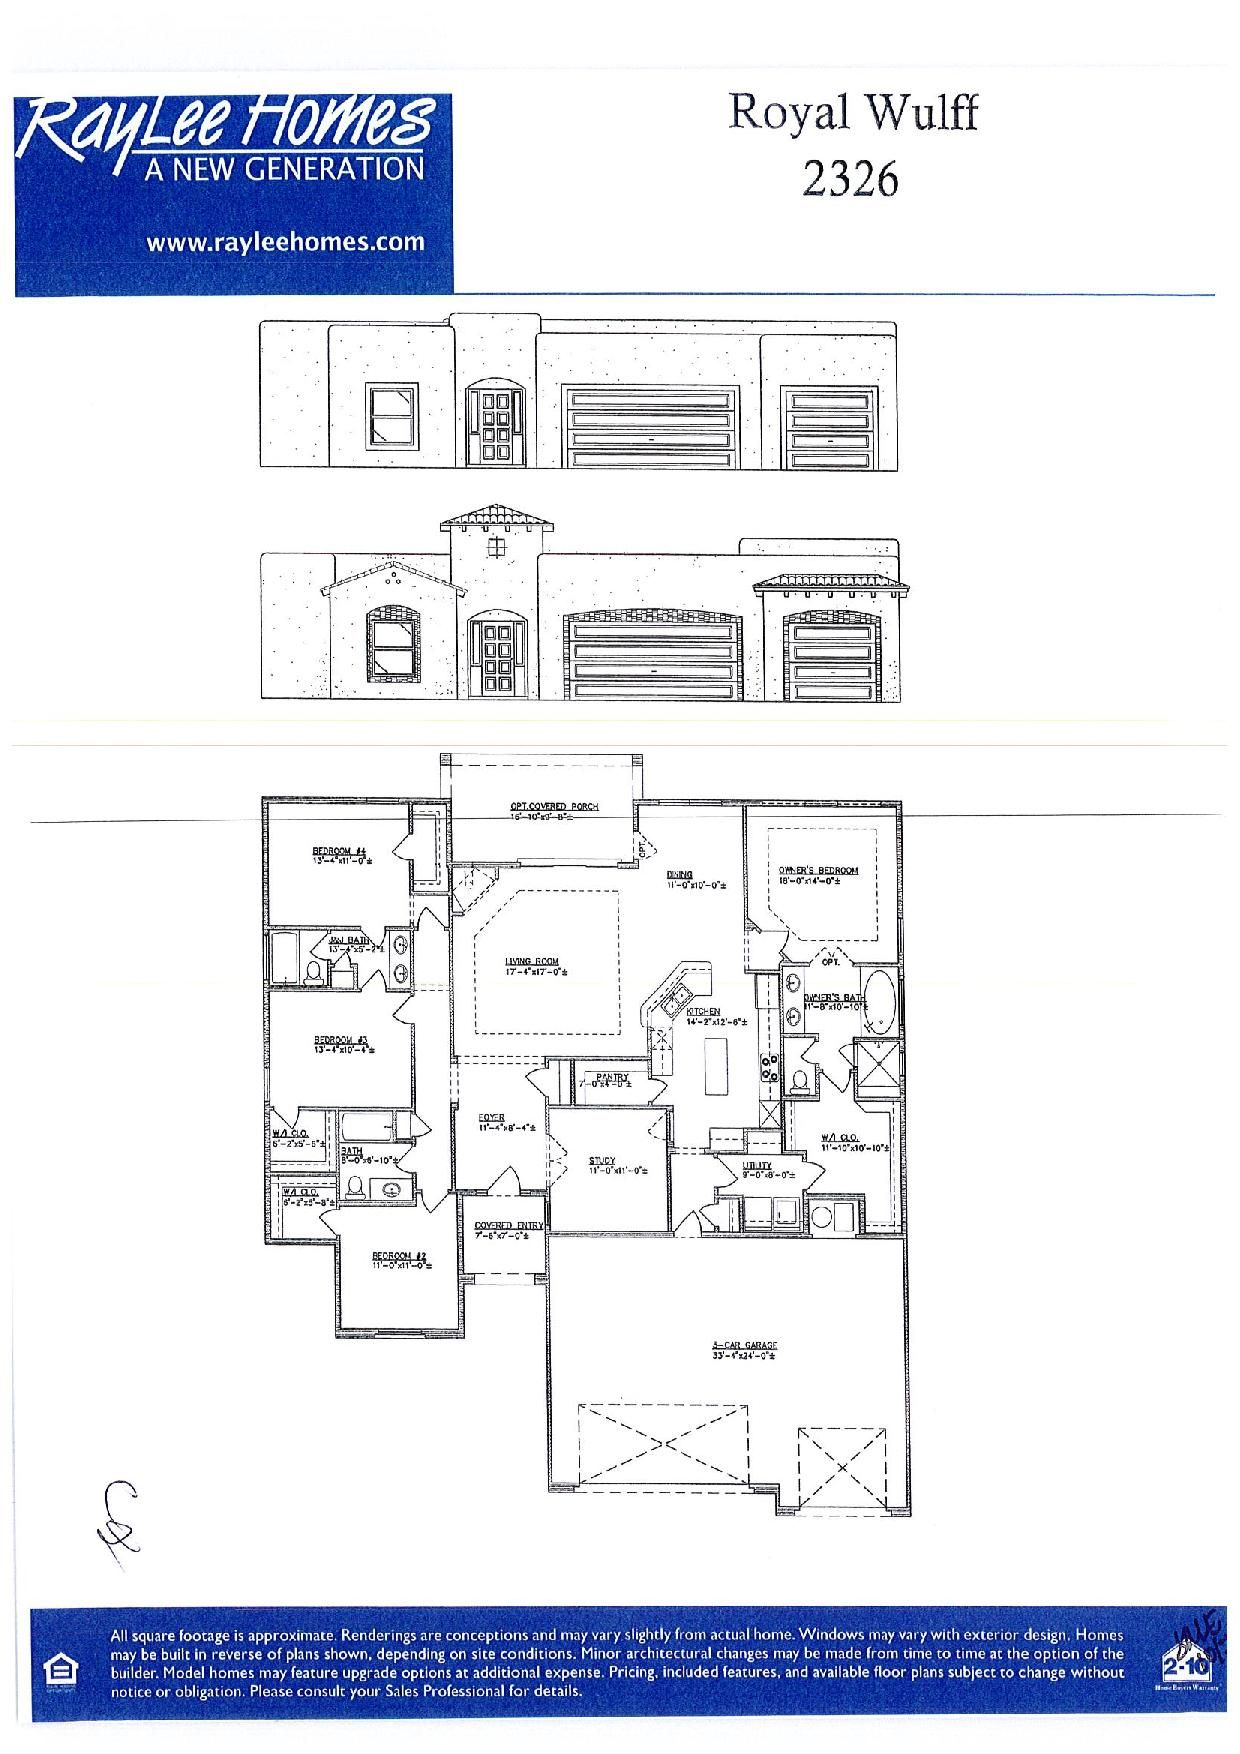 Raylee Homes Royal Wulff Floor Plan Raylee Homes Floor